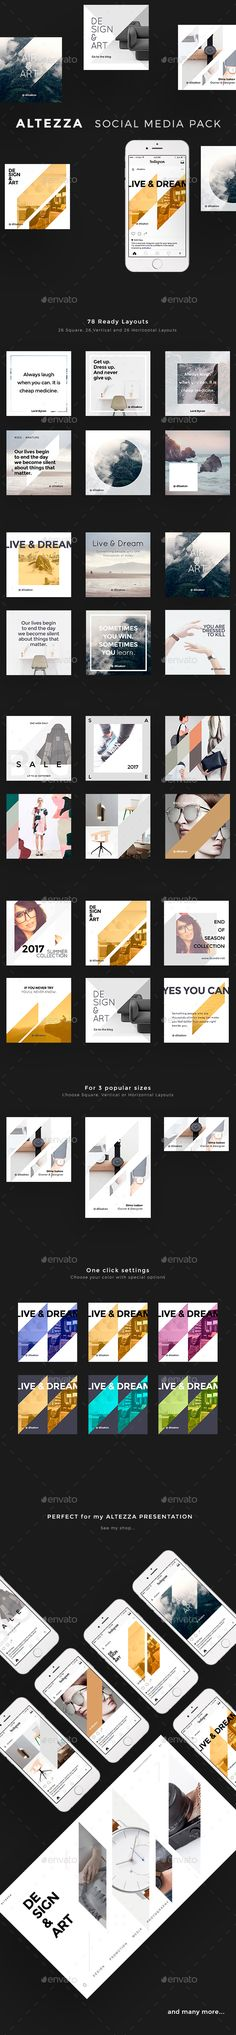 Altezza Social Media Pack — Photoshop PSD #trending pack #banners • Download ➝ https://graphicriver.net/item/altezza-social-media-pack/19431592?ref=pxcr